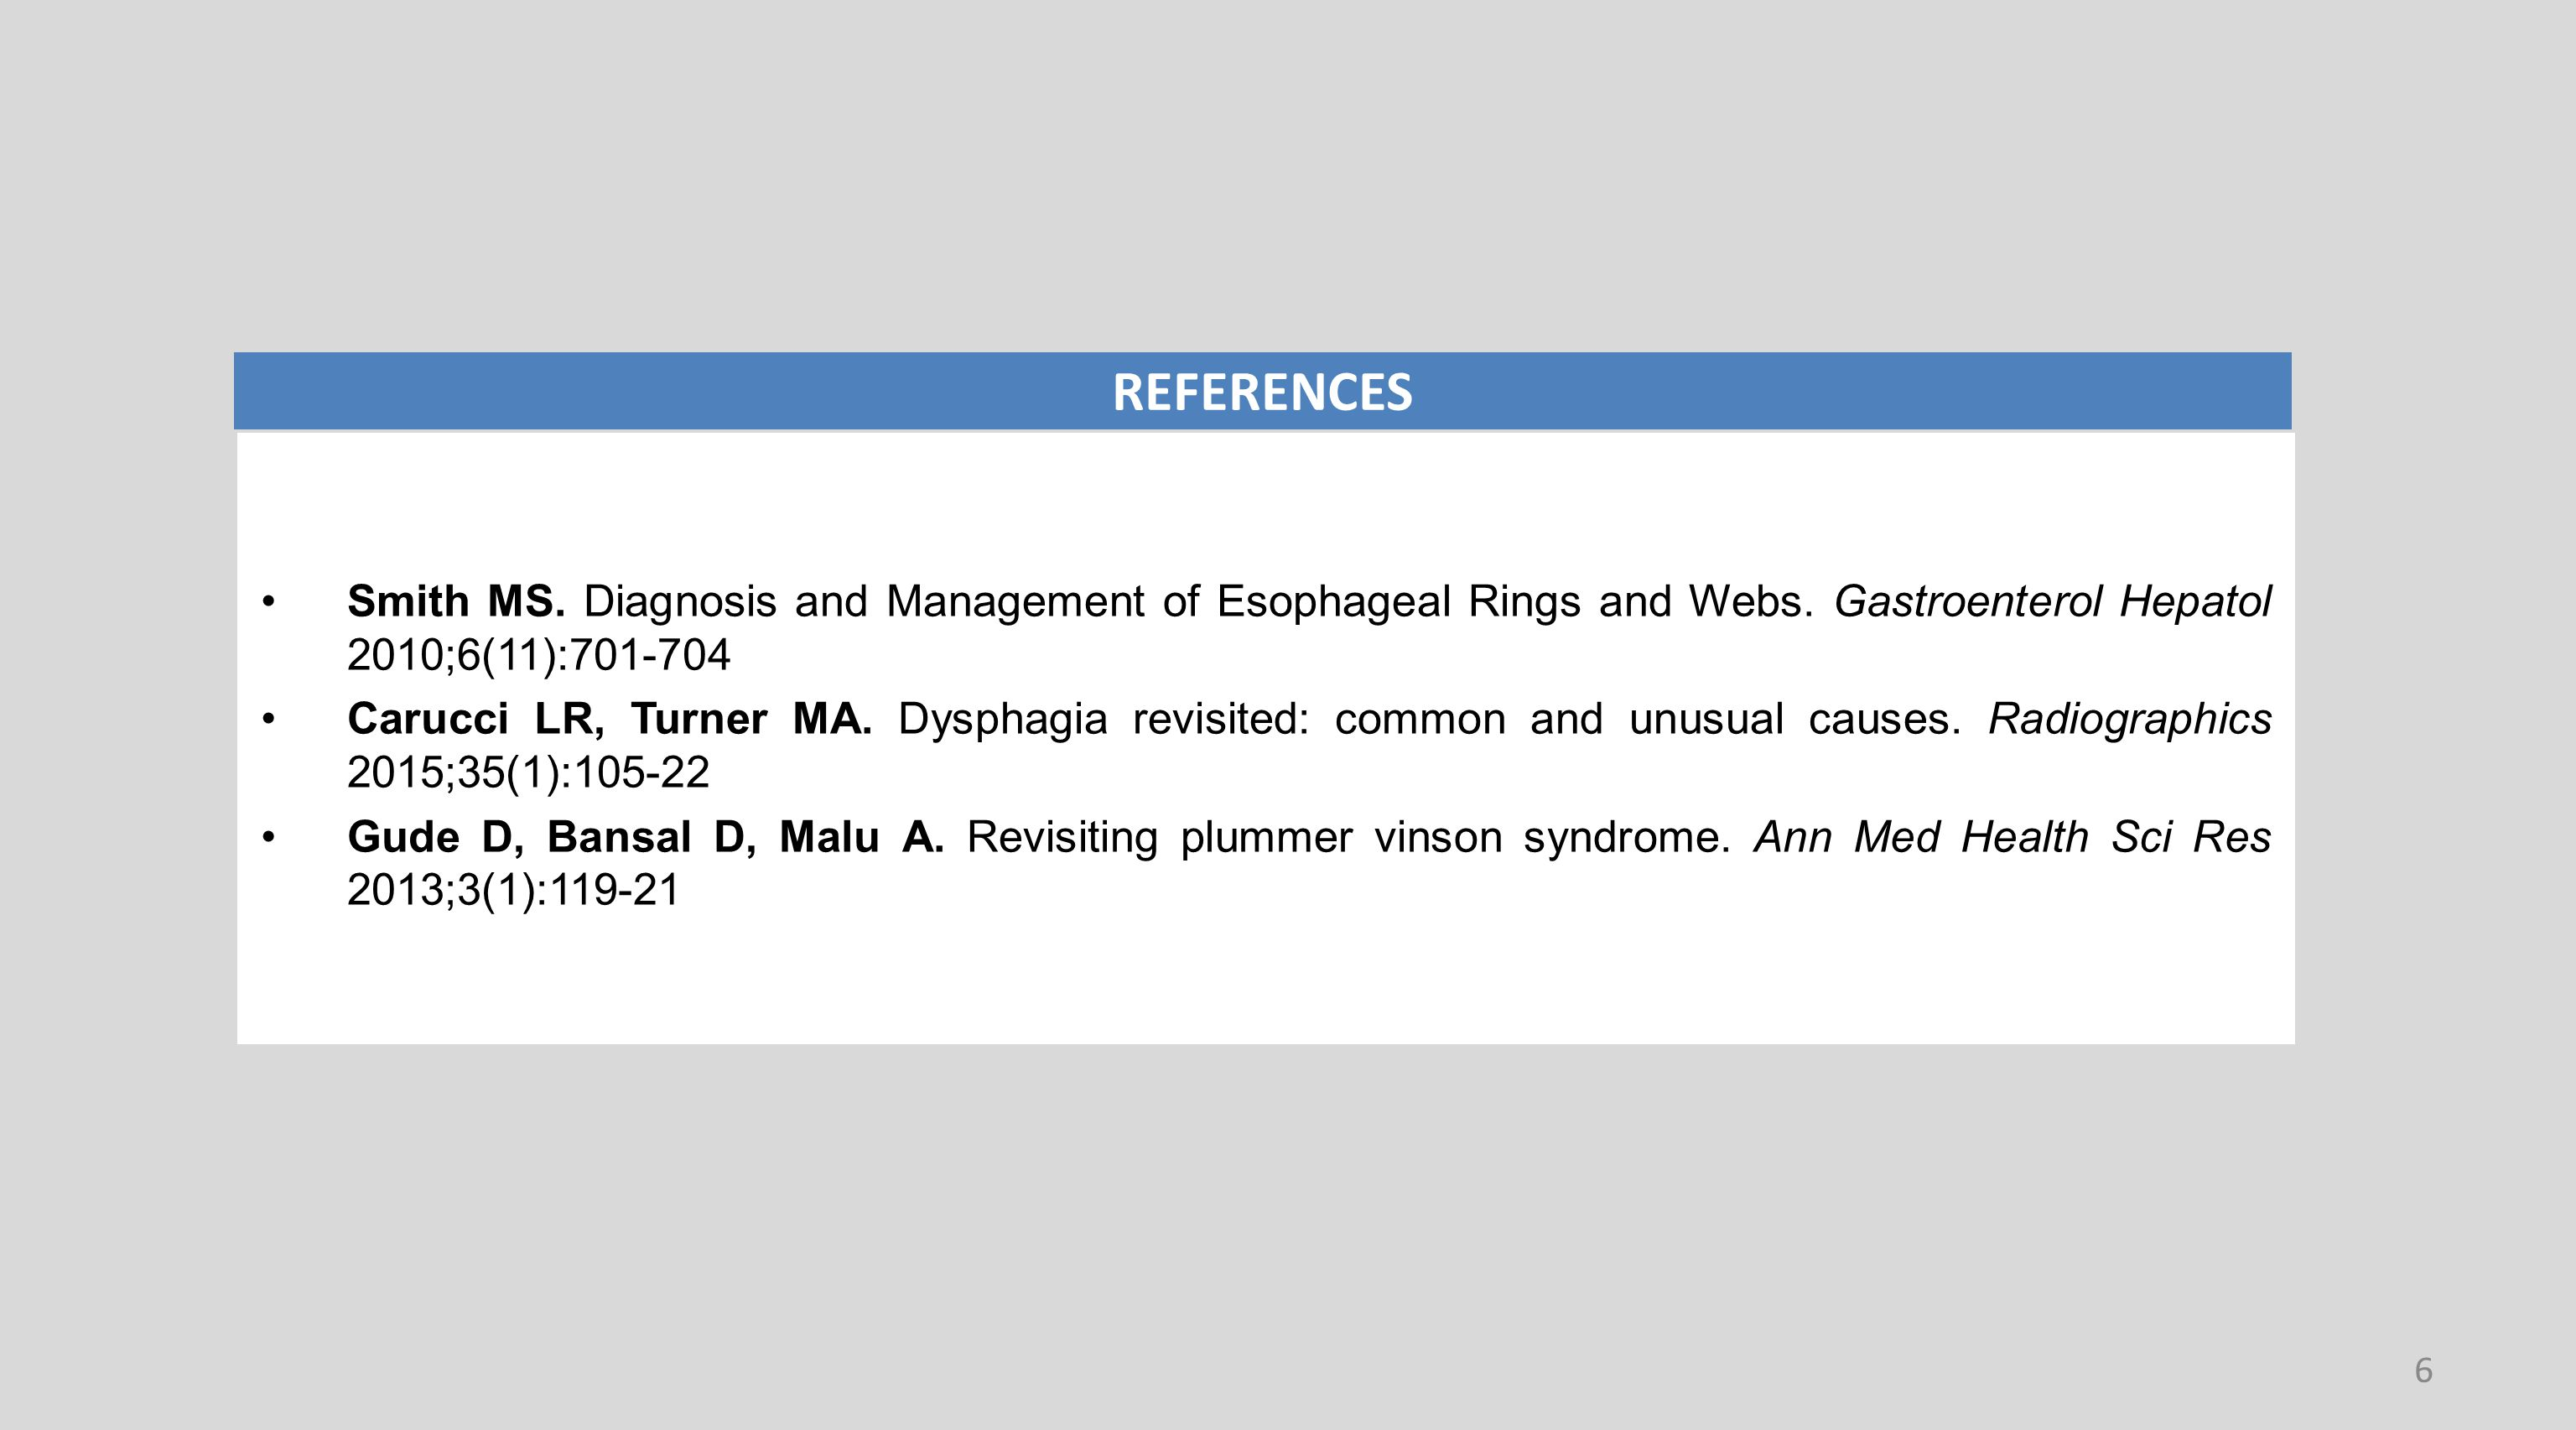 Smith MS. Diagnosis and Management of Esophageal Rings and Webs.